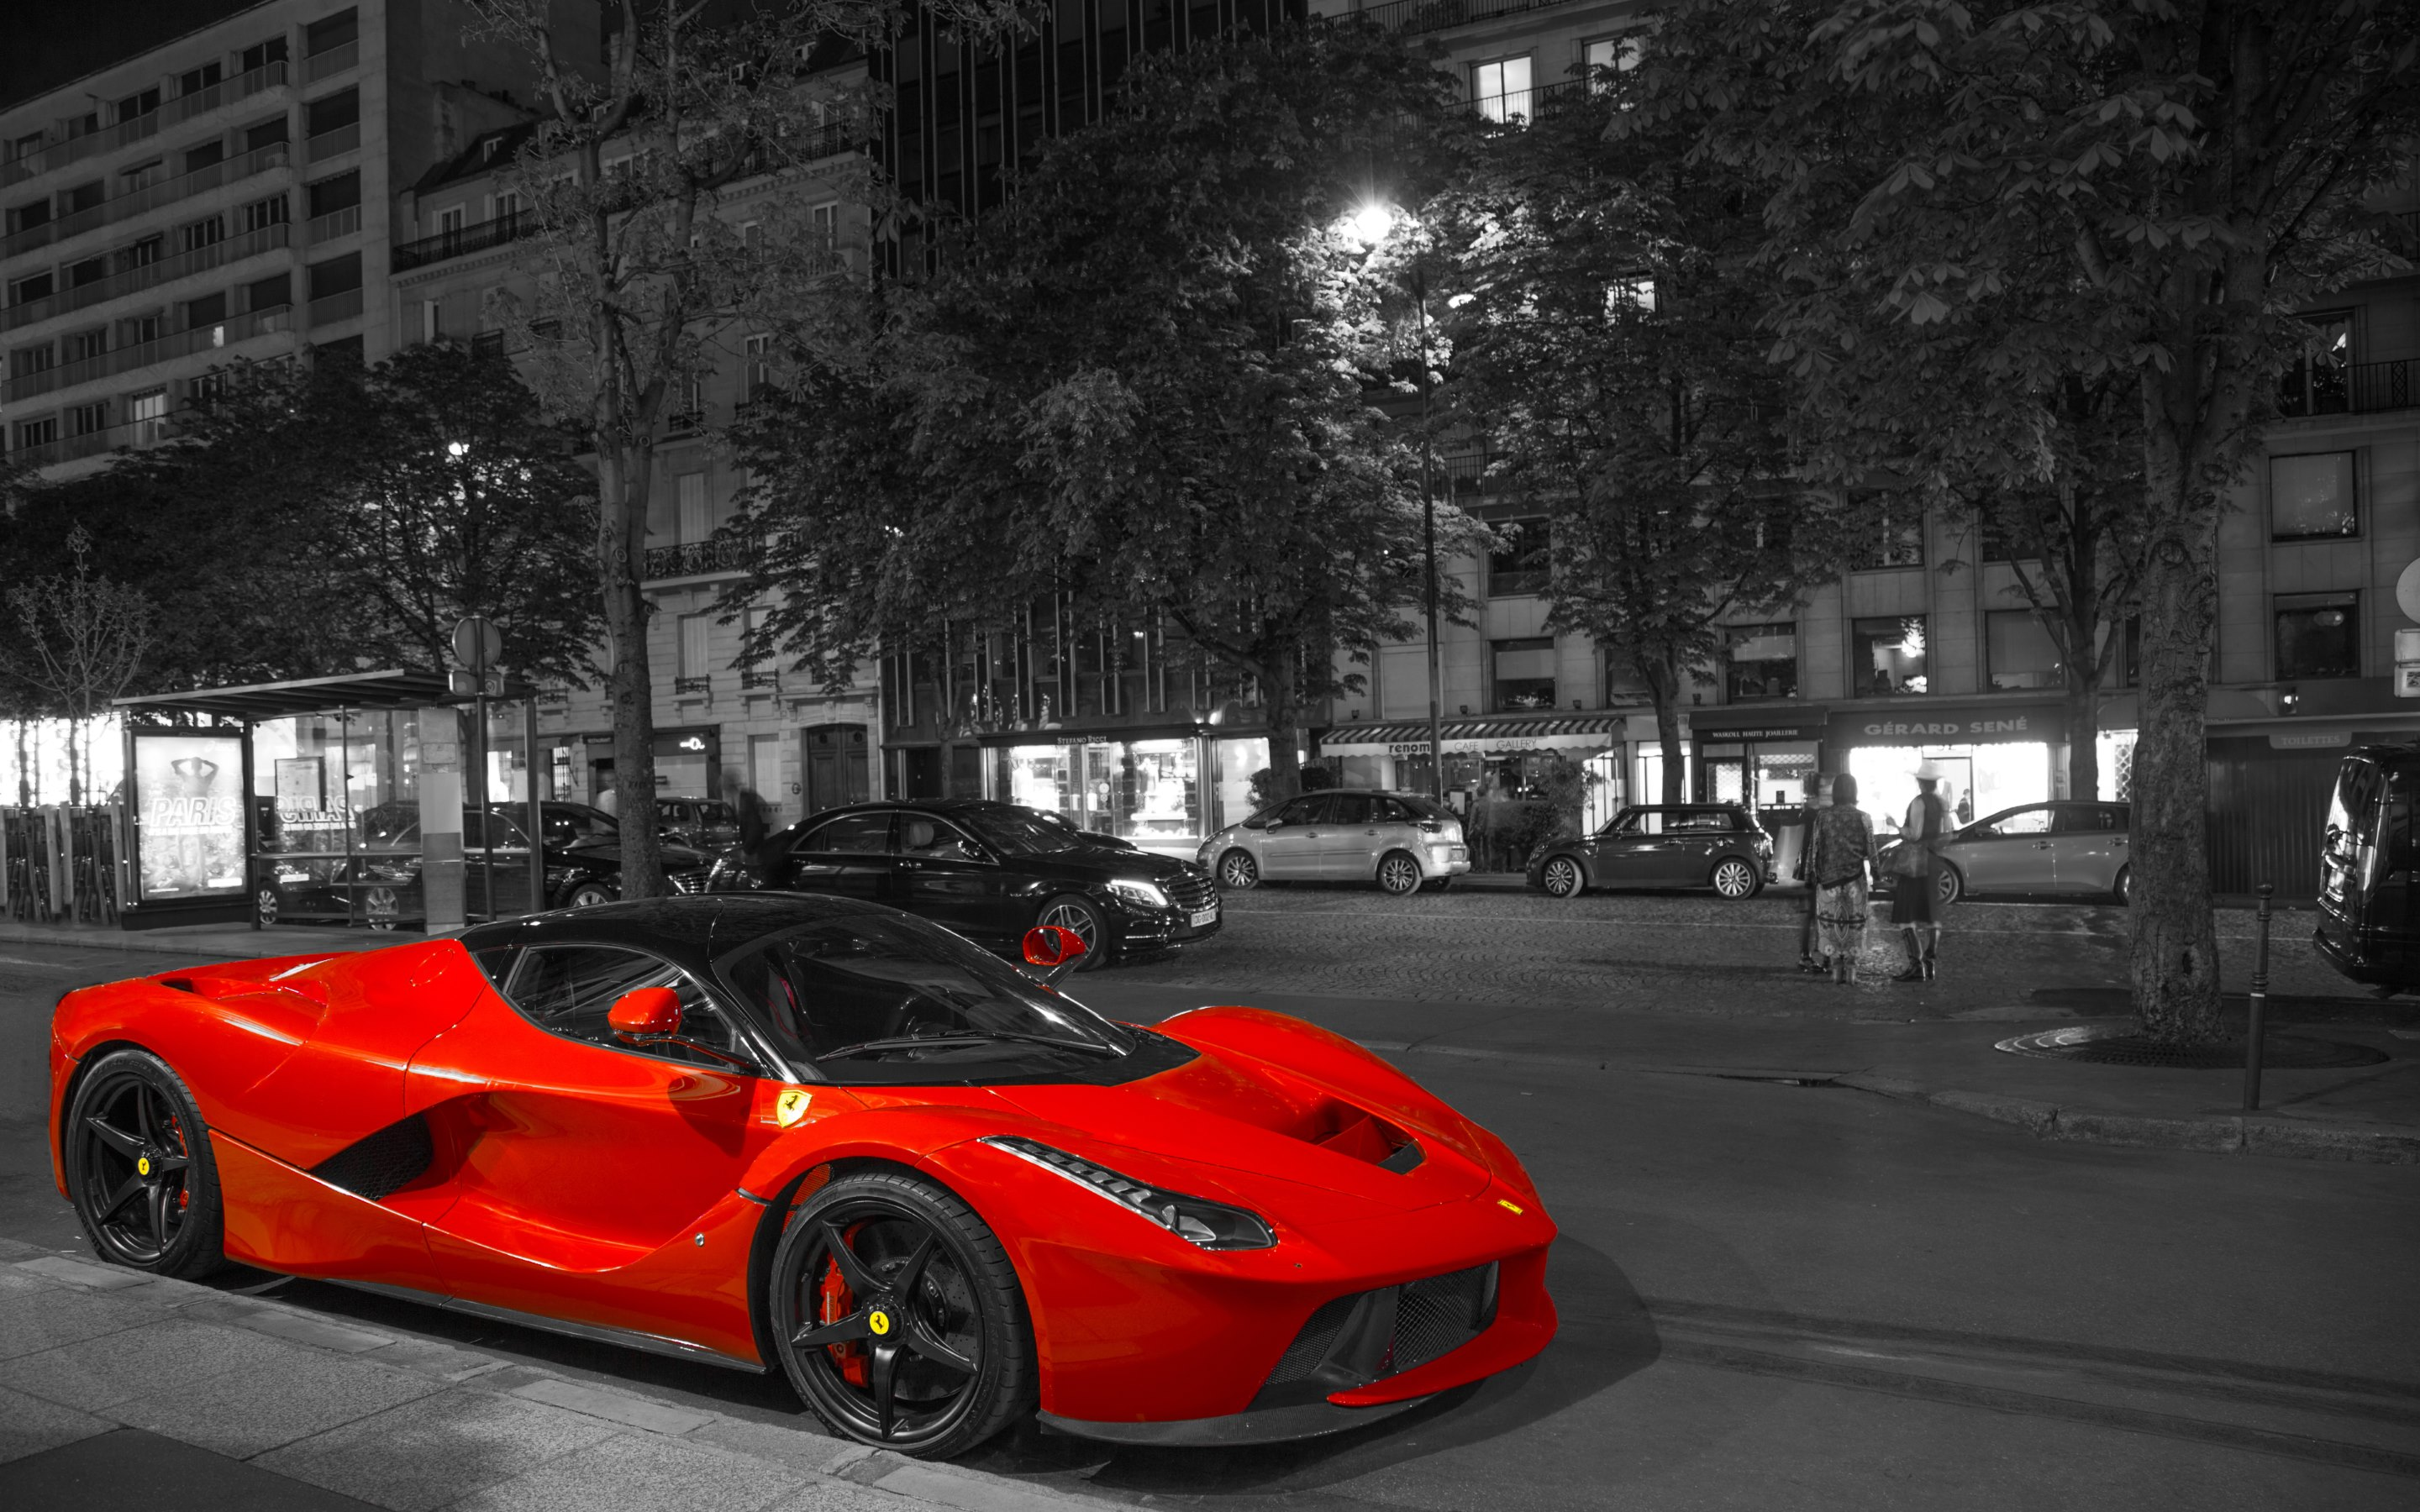 Super Red Car Laferrari Wallpapers  C B K Hd Desktop Backgrounds Phone